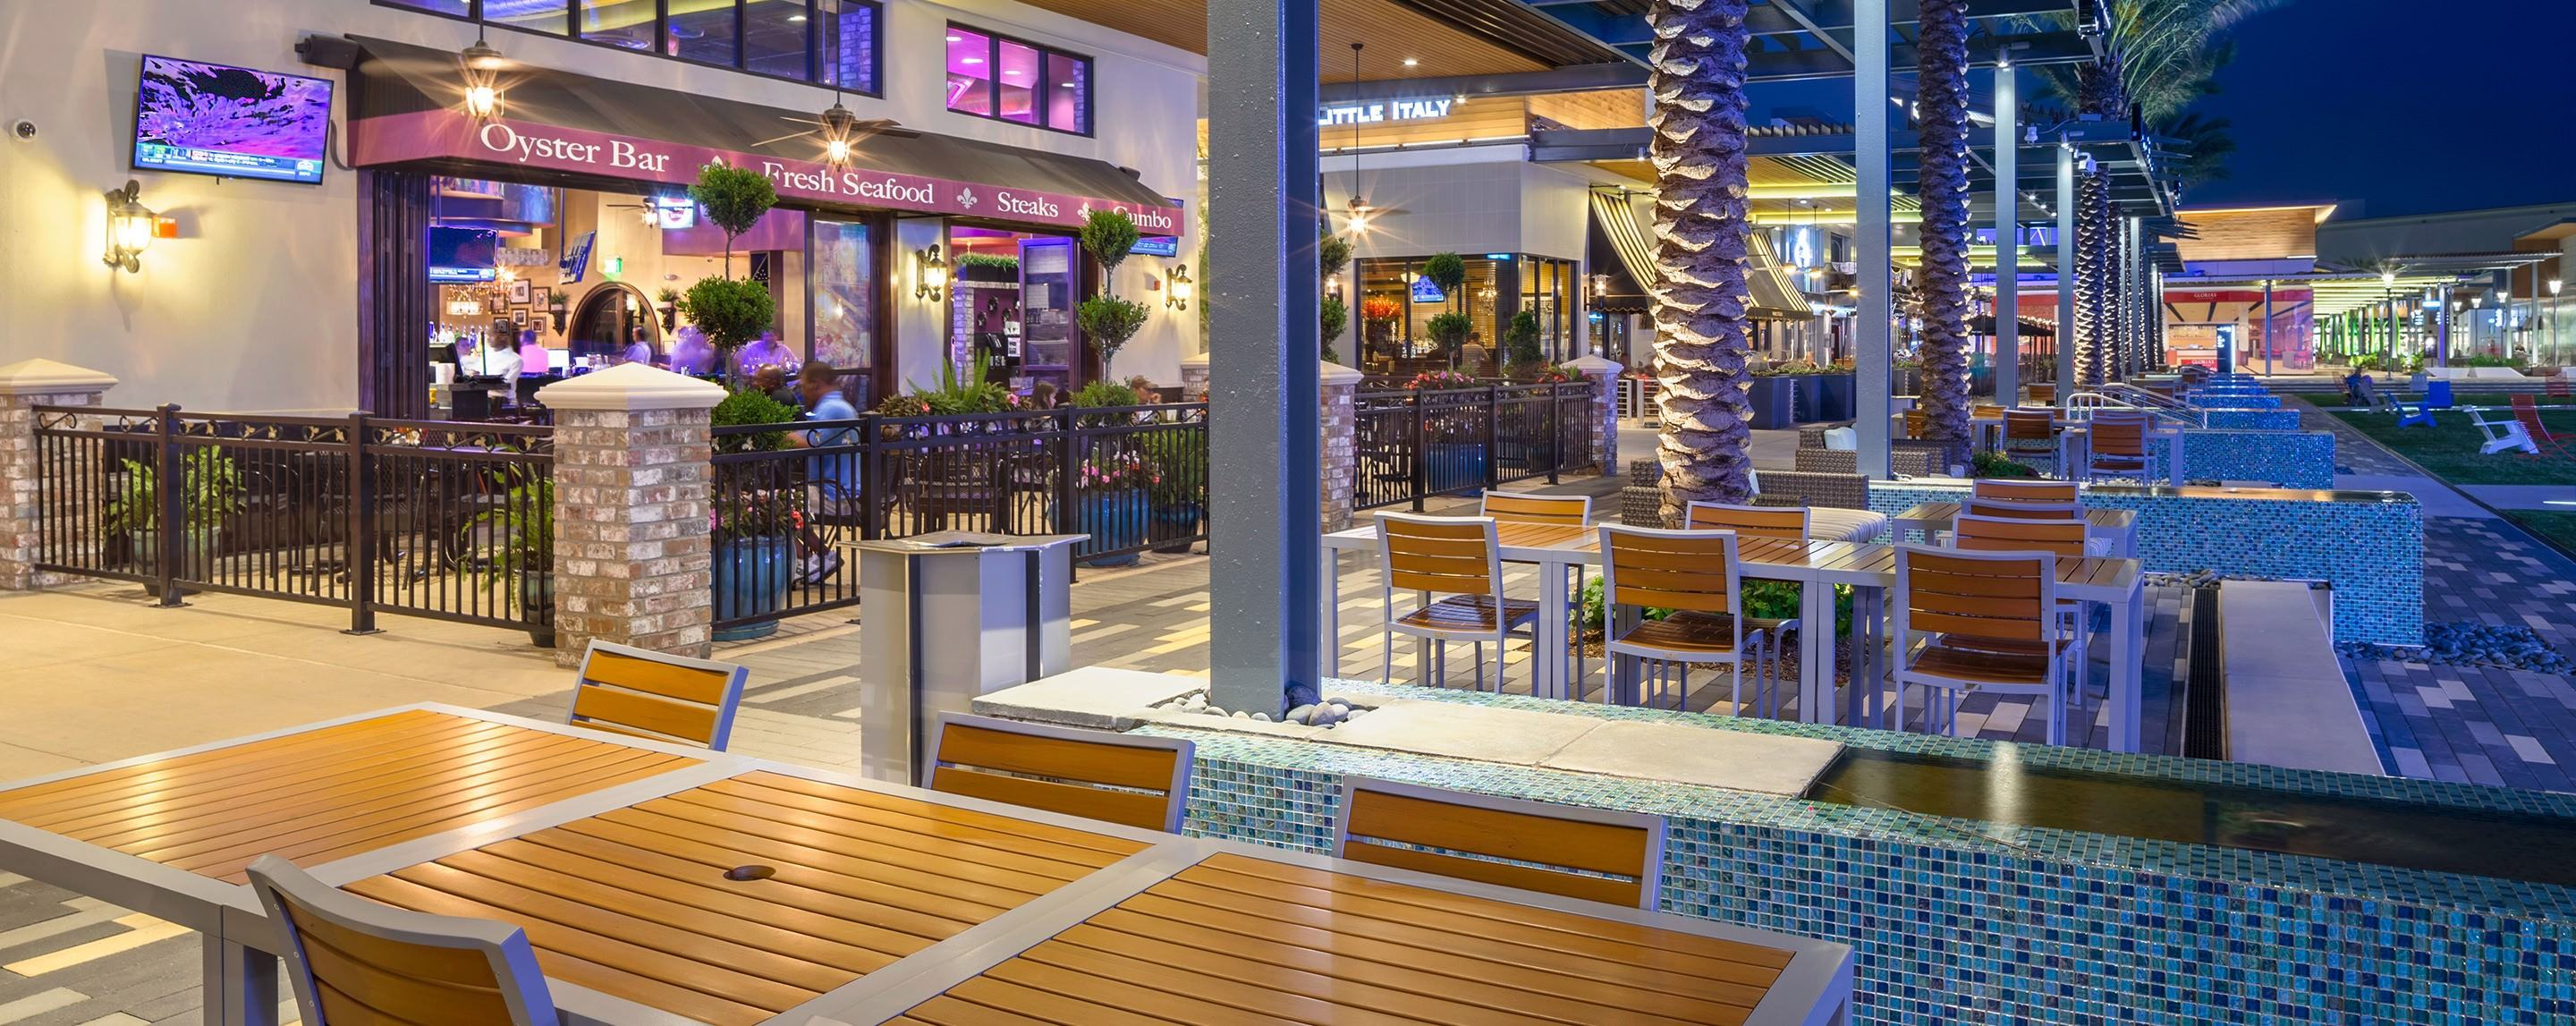 Sets of tables sit unoccupied outside of a restaurant in a shopping center.